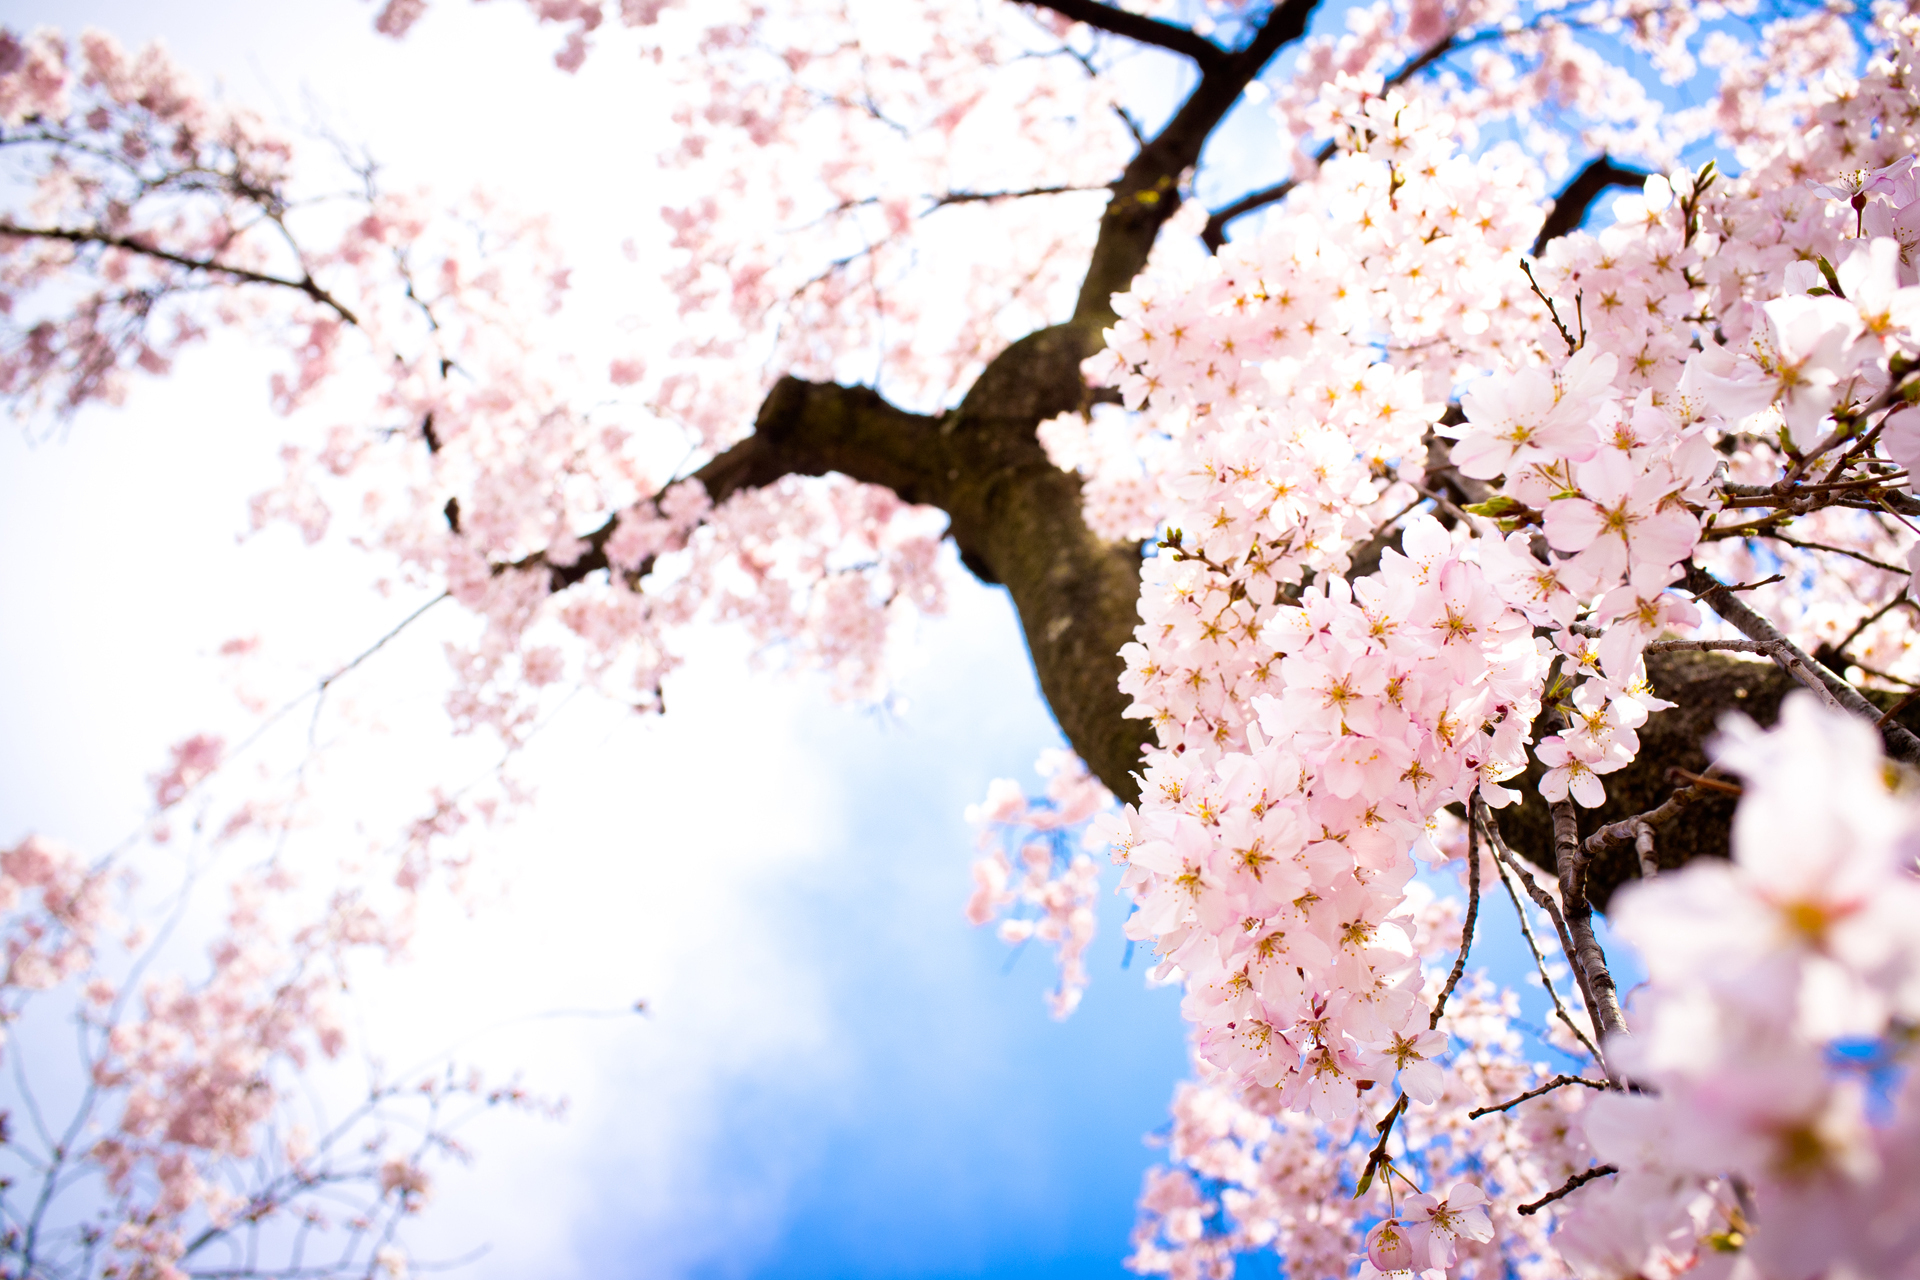 Pink Cherry Blossom Flowers Photo 34658305 Fanpop